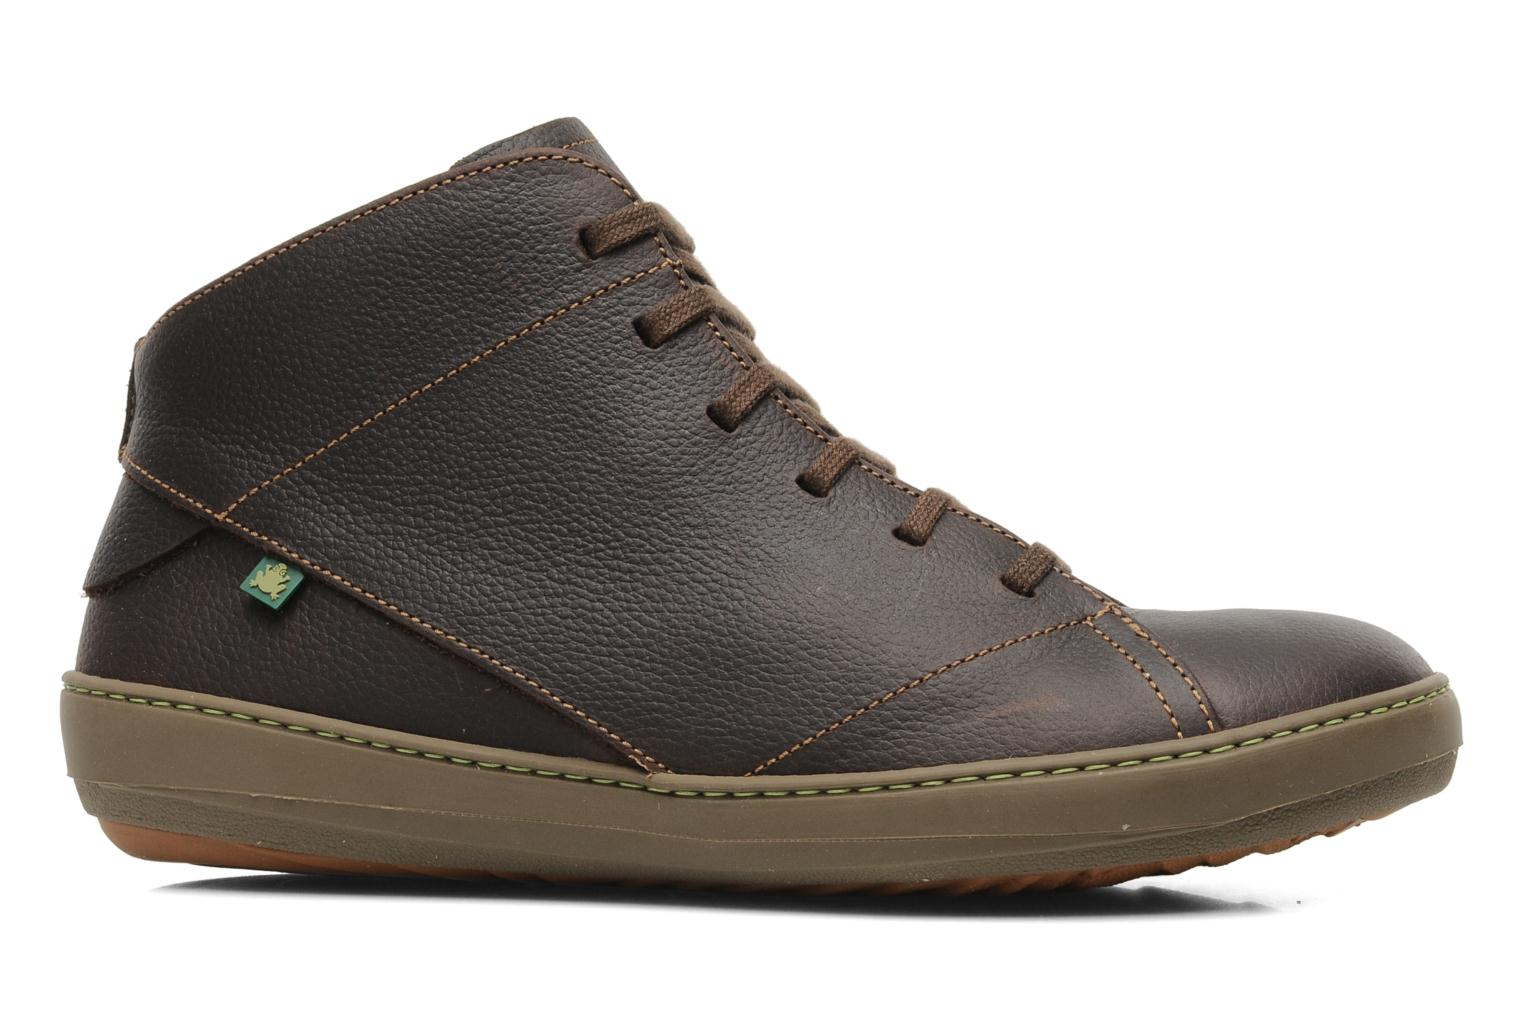 Meteo N212 Brown soft grain